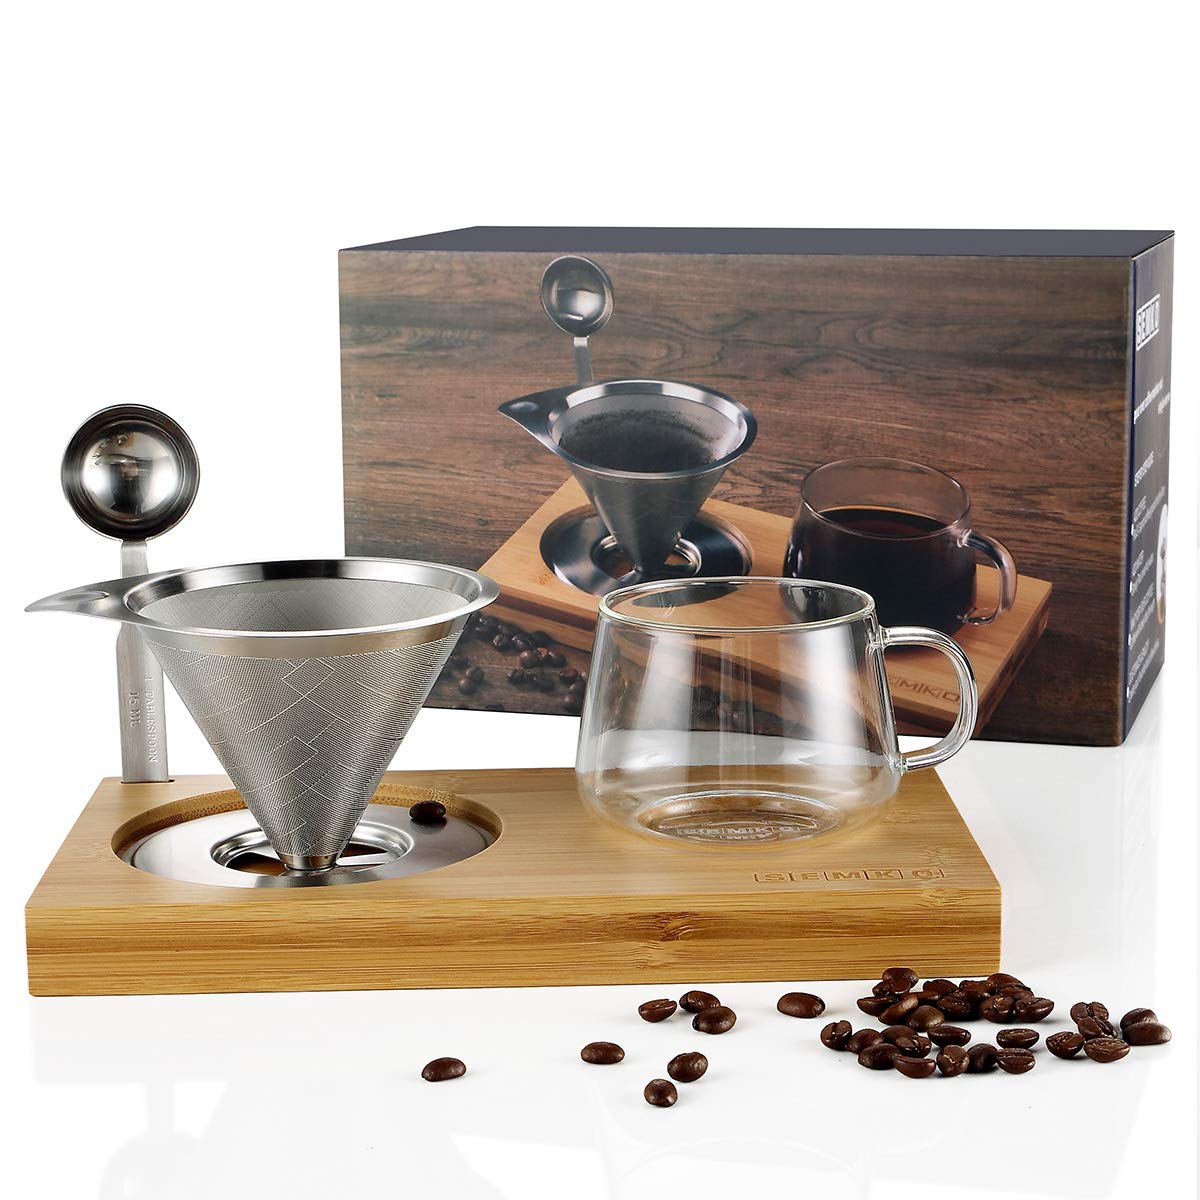 Pour Over Coffee Dripper Set Include Stainless Steel Paperless Reusable Filters, 8 Ounce Glass Cup, Spoon and Bamboo Base, Portable Single Cup Coffee Maker for Home Office - Gift-ready Package by SEMKO